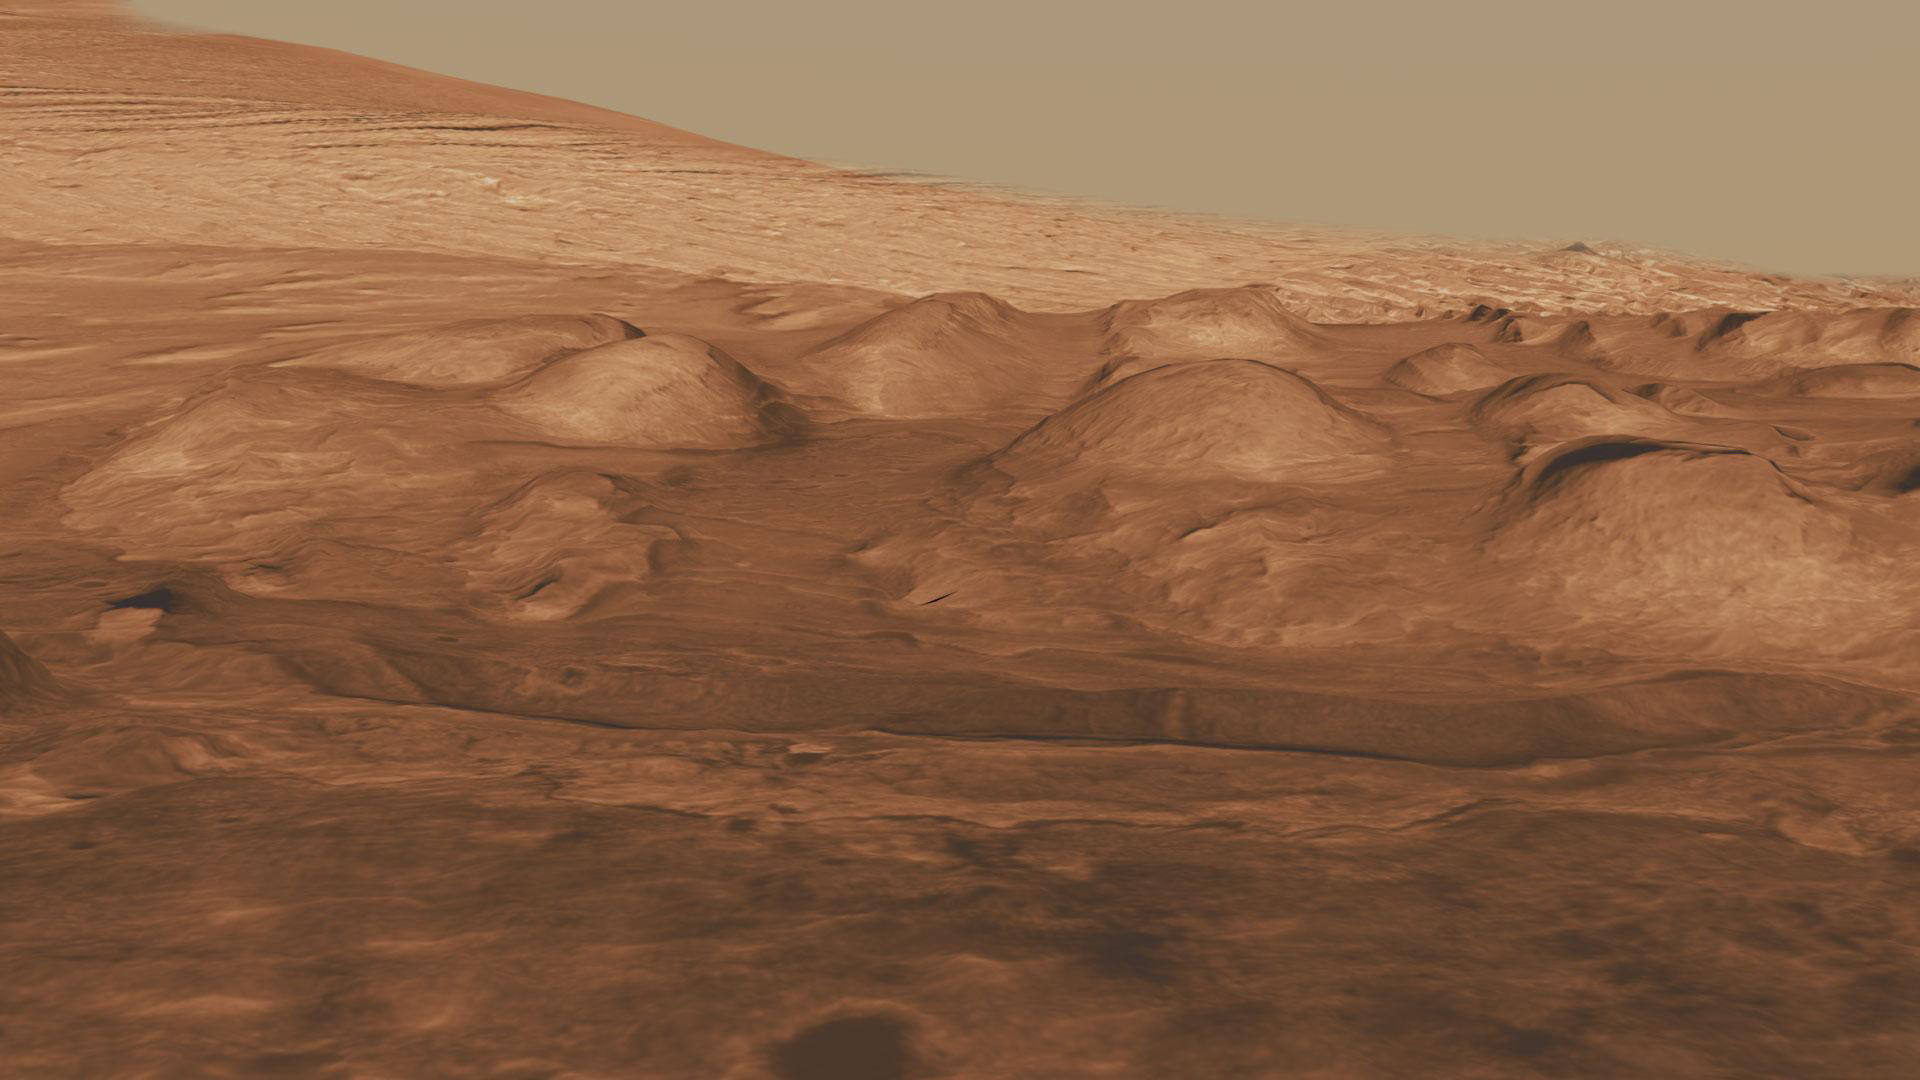 Evidence Builds For Water on Mars